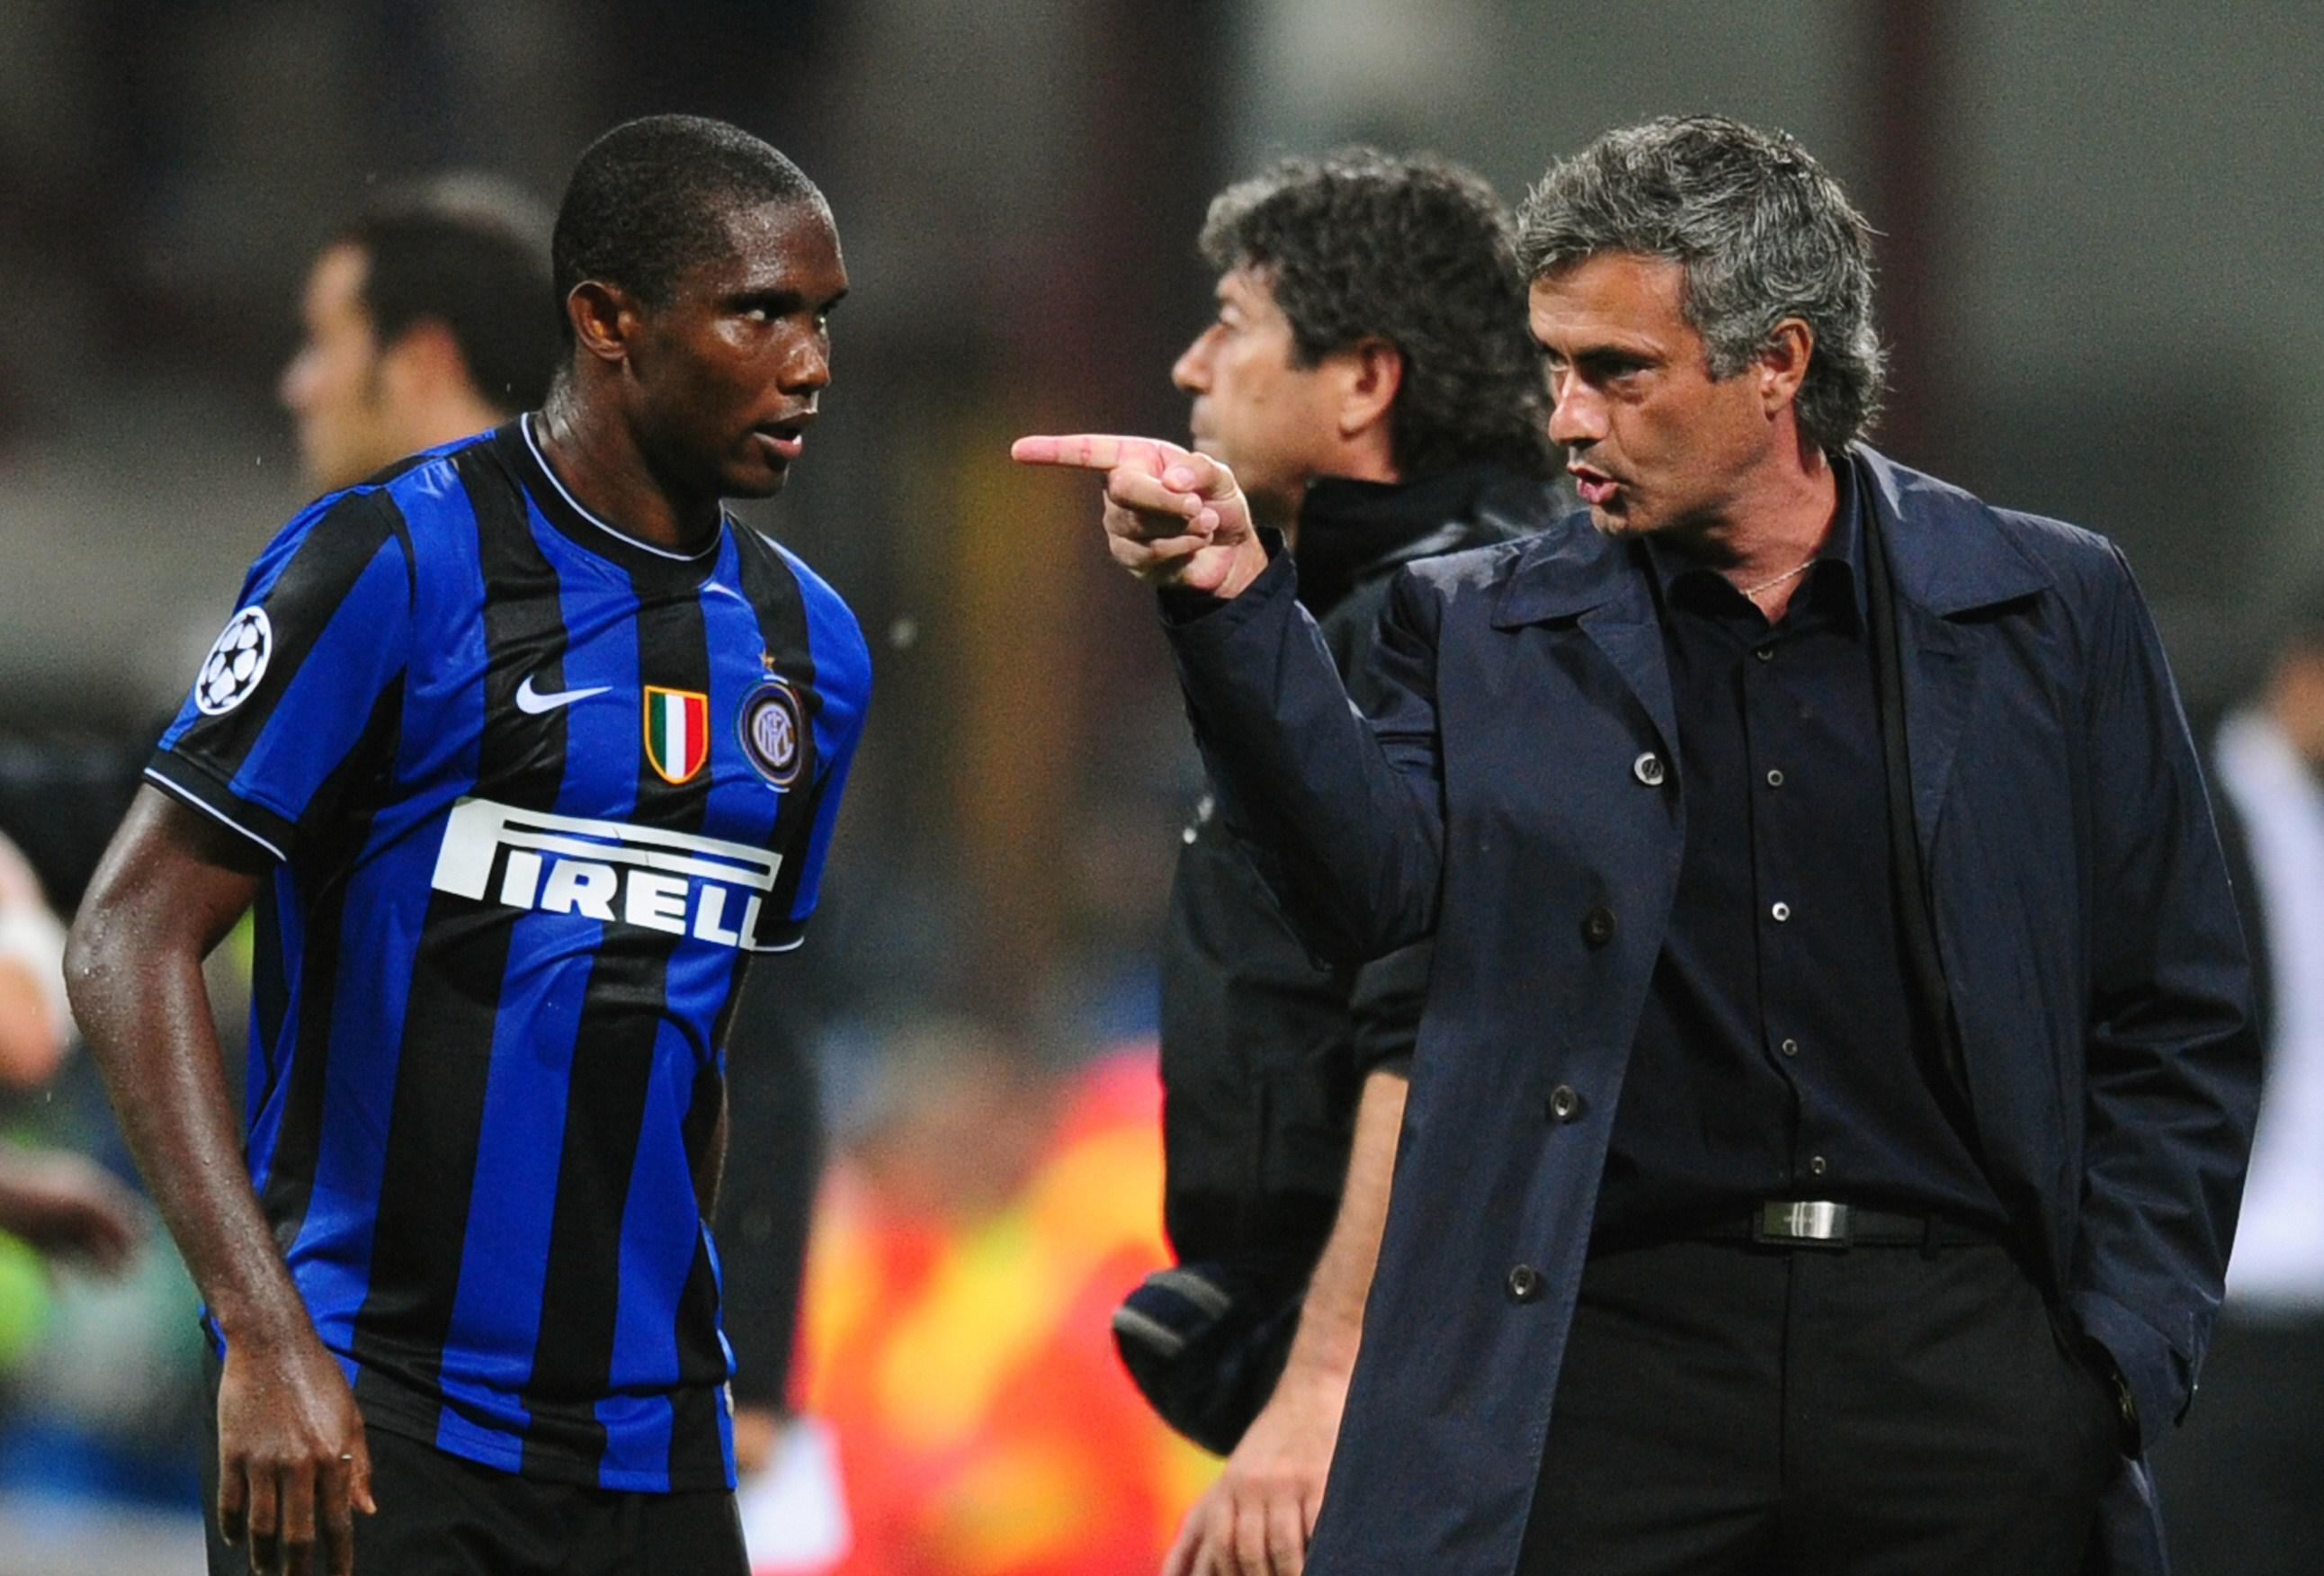 Eto'o in that Inter kit, though